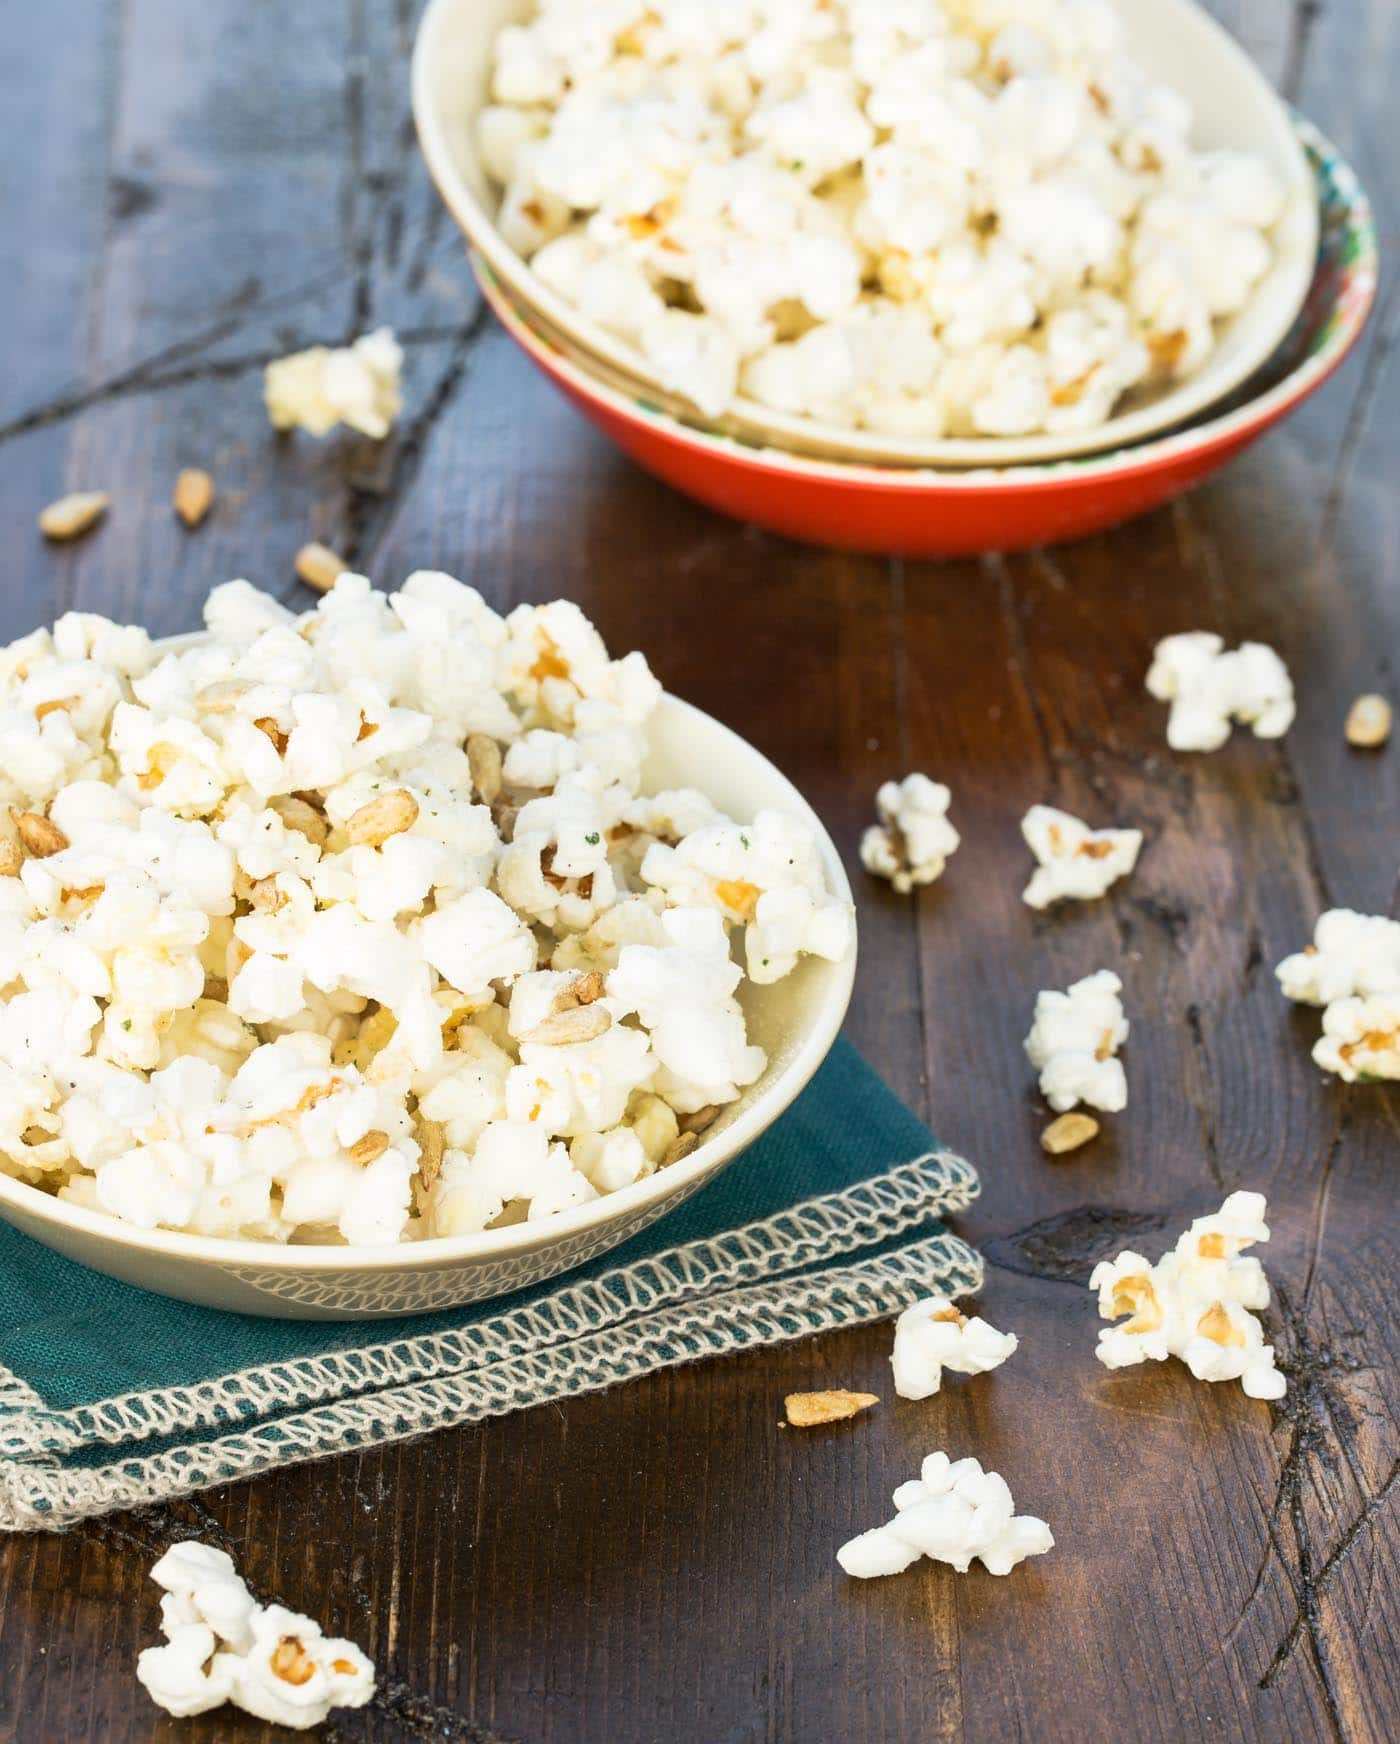 My kids' favorite condiment is ranch dressing, so I knew they would like this Ranch Popcorn with Sunflower seeds. Check out the rest of our Smart Summer Snacks for Kids!